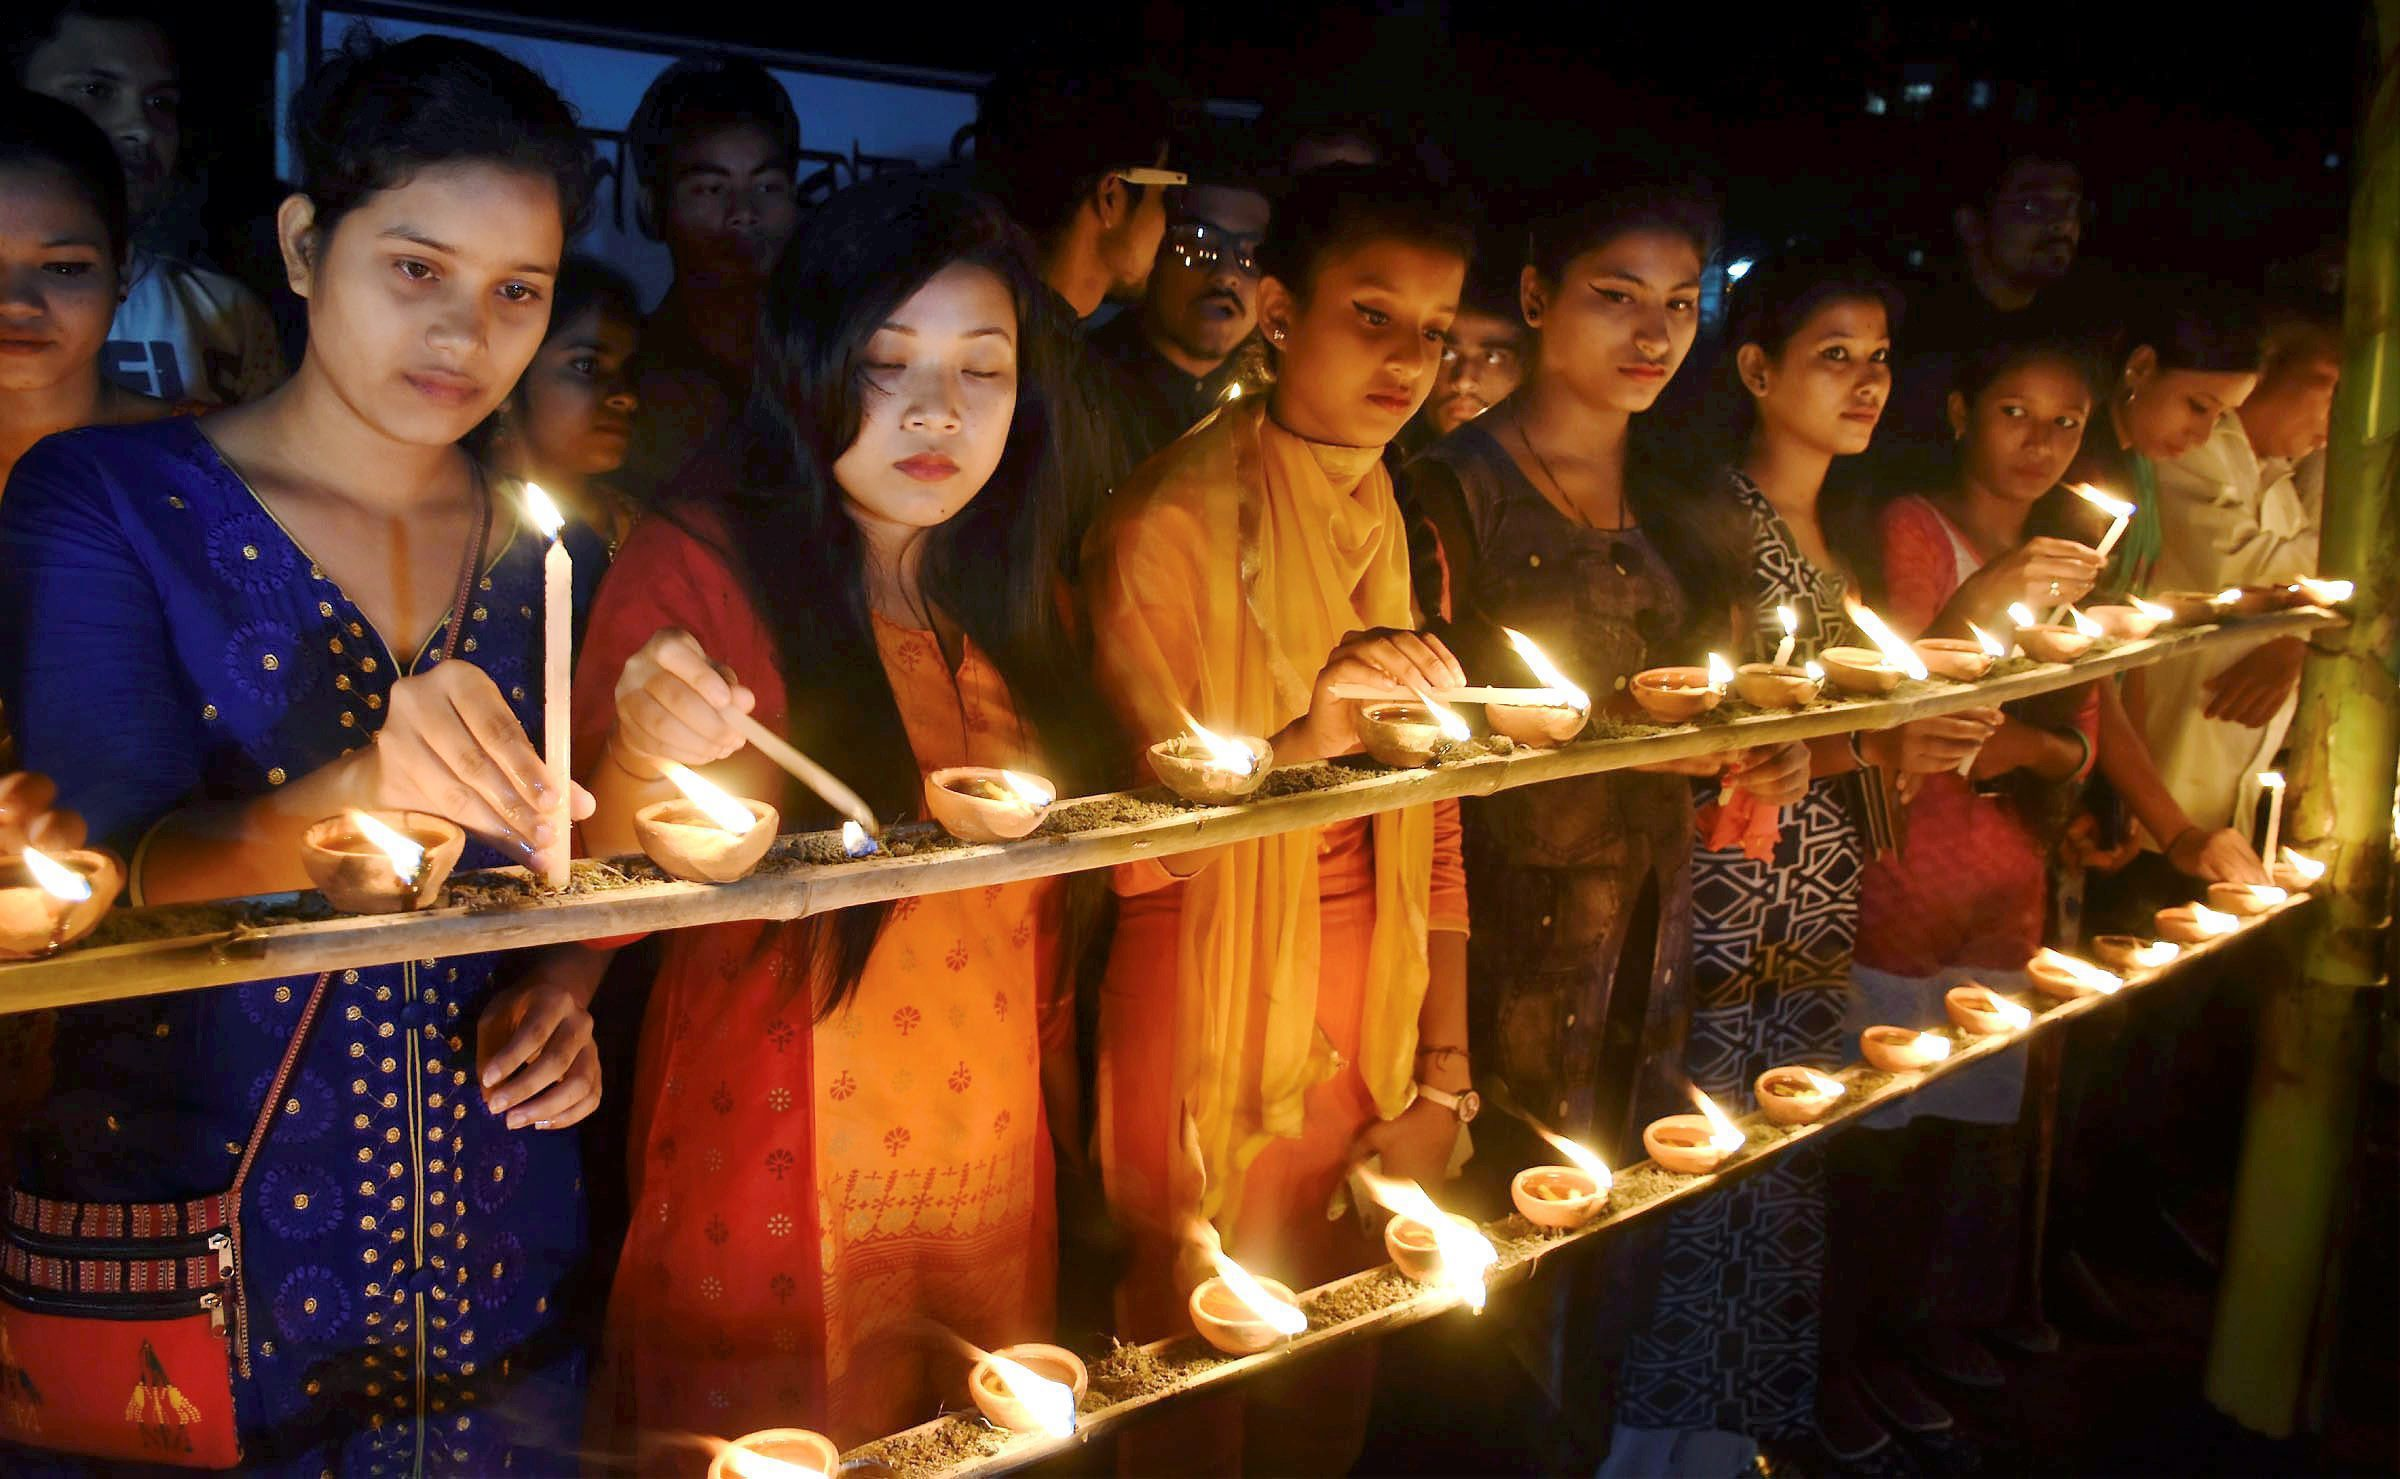 Members of the All Assam Students Union (AASU) lighting earthen lamps at Latasil playground in Guwahati to pay tribute to the victims of the October 30, 2008 serial bomb blast on its ninth anniversary - PTI